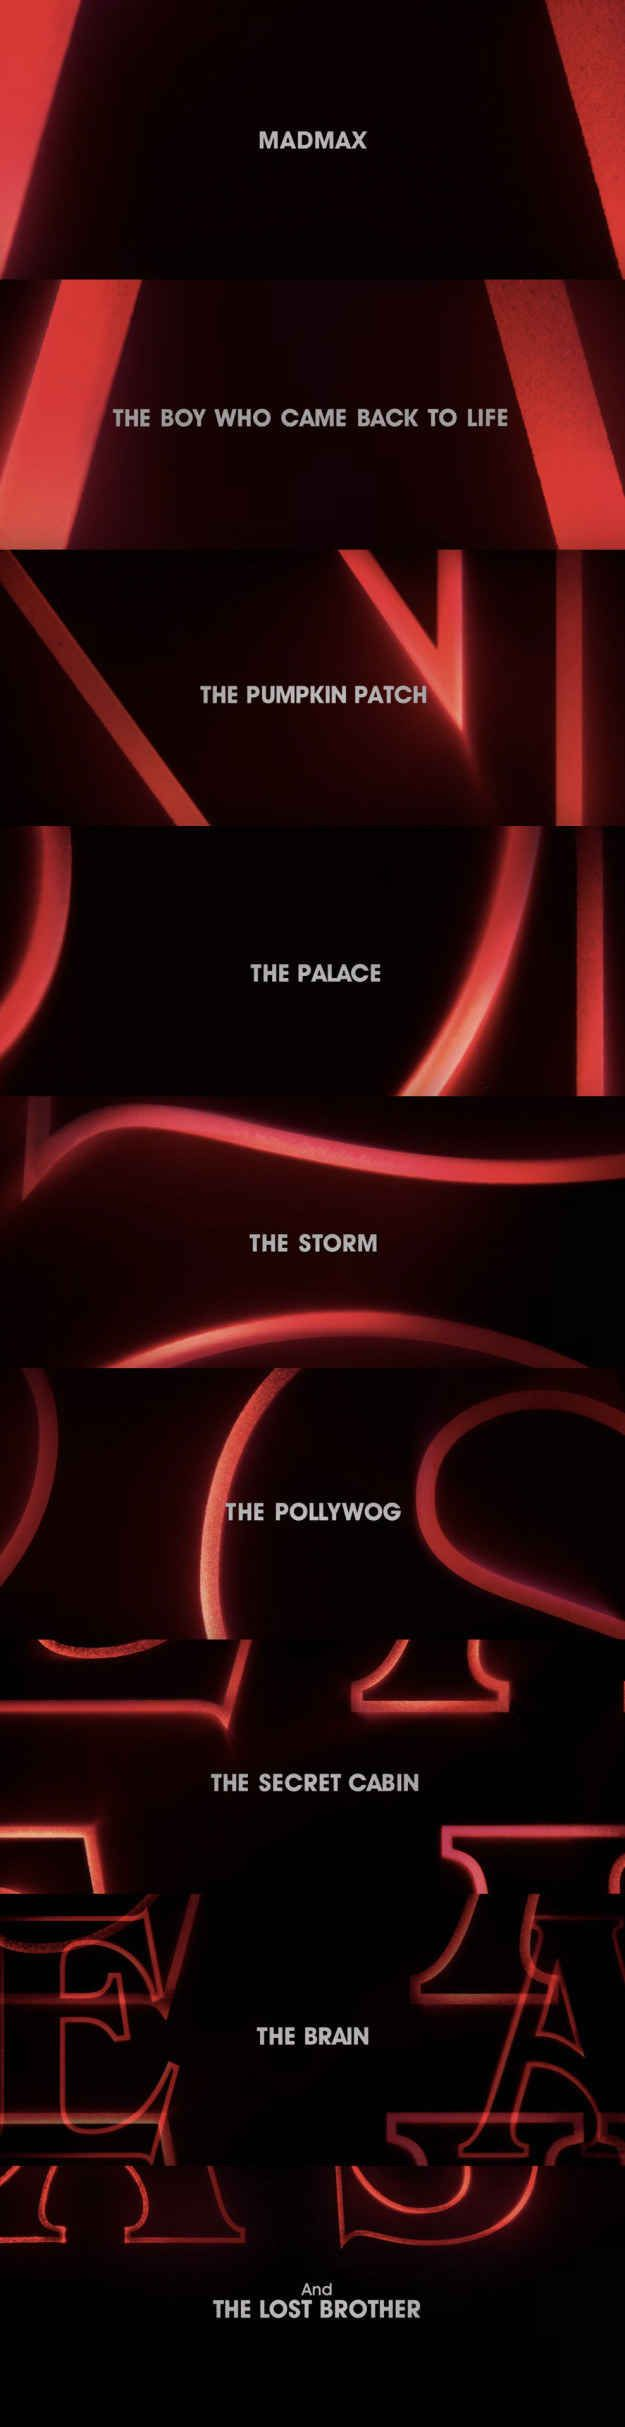 The teaser included what are rumored to be the nine episode titles for the new season.